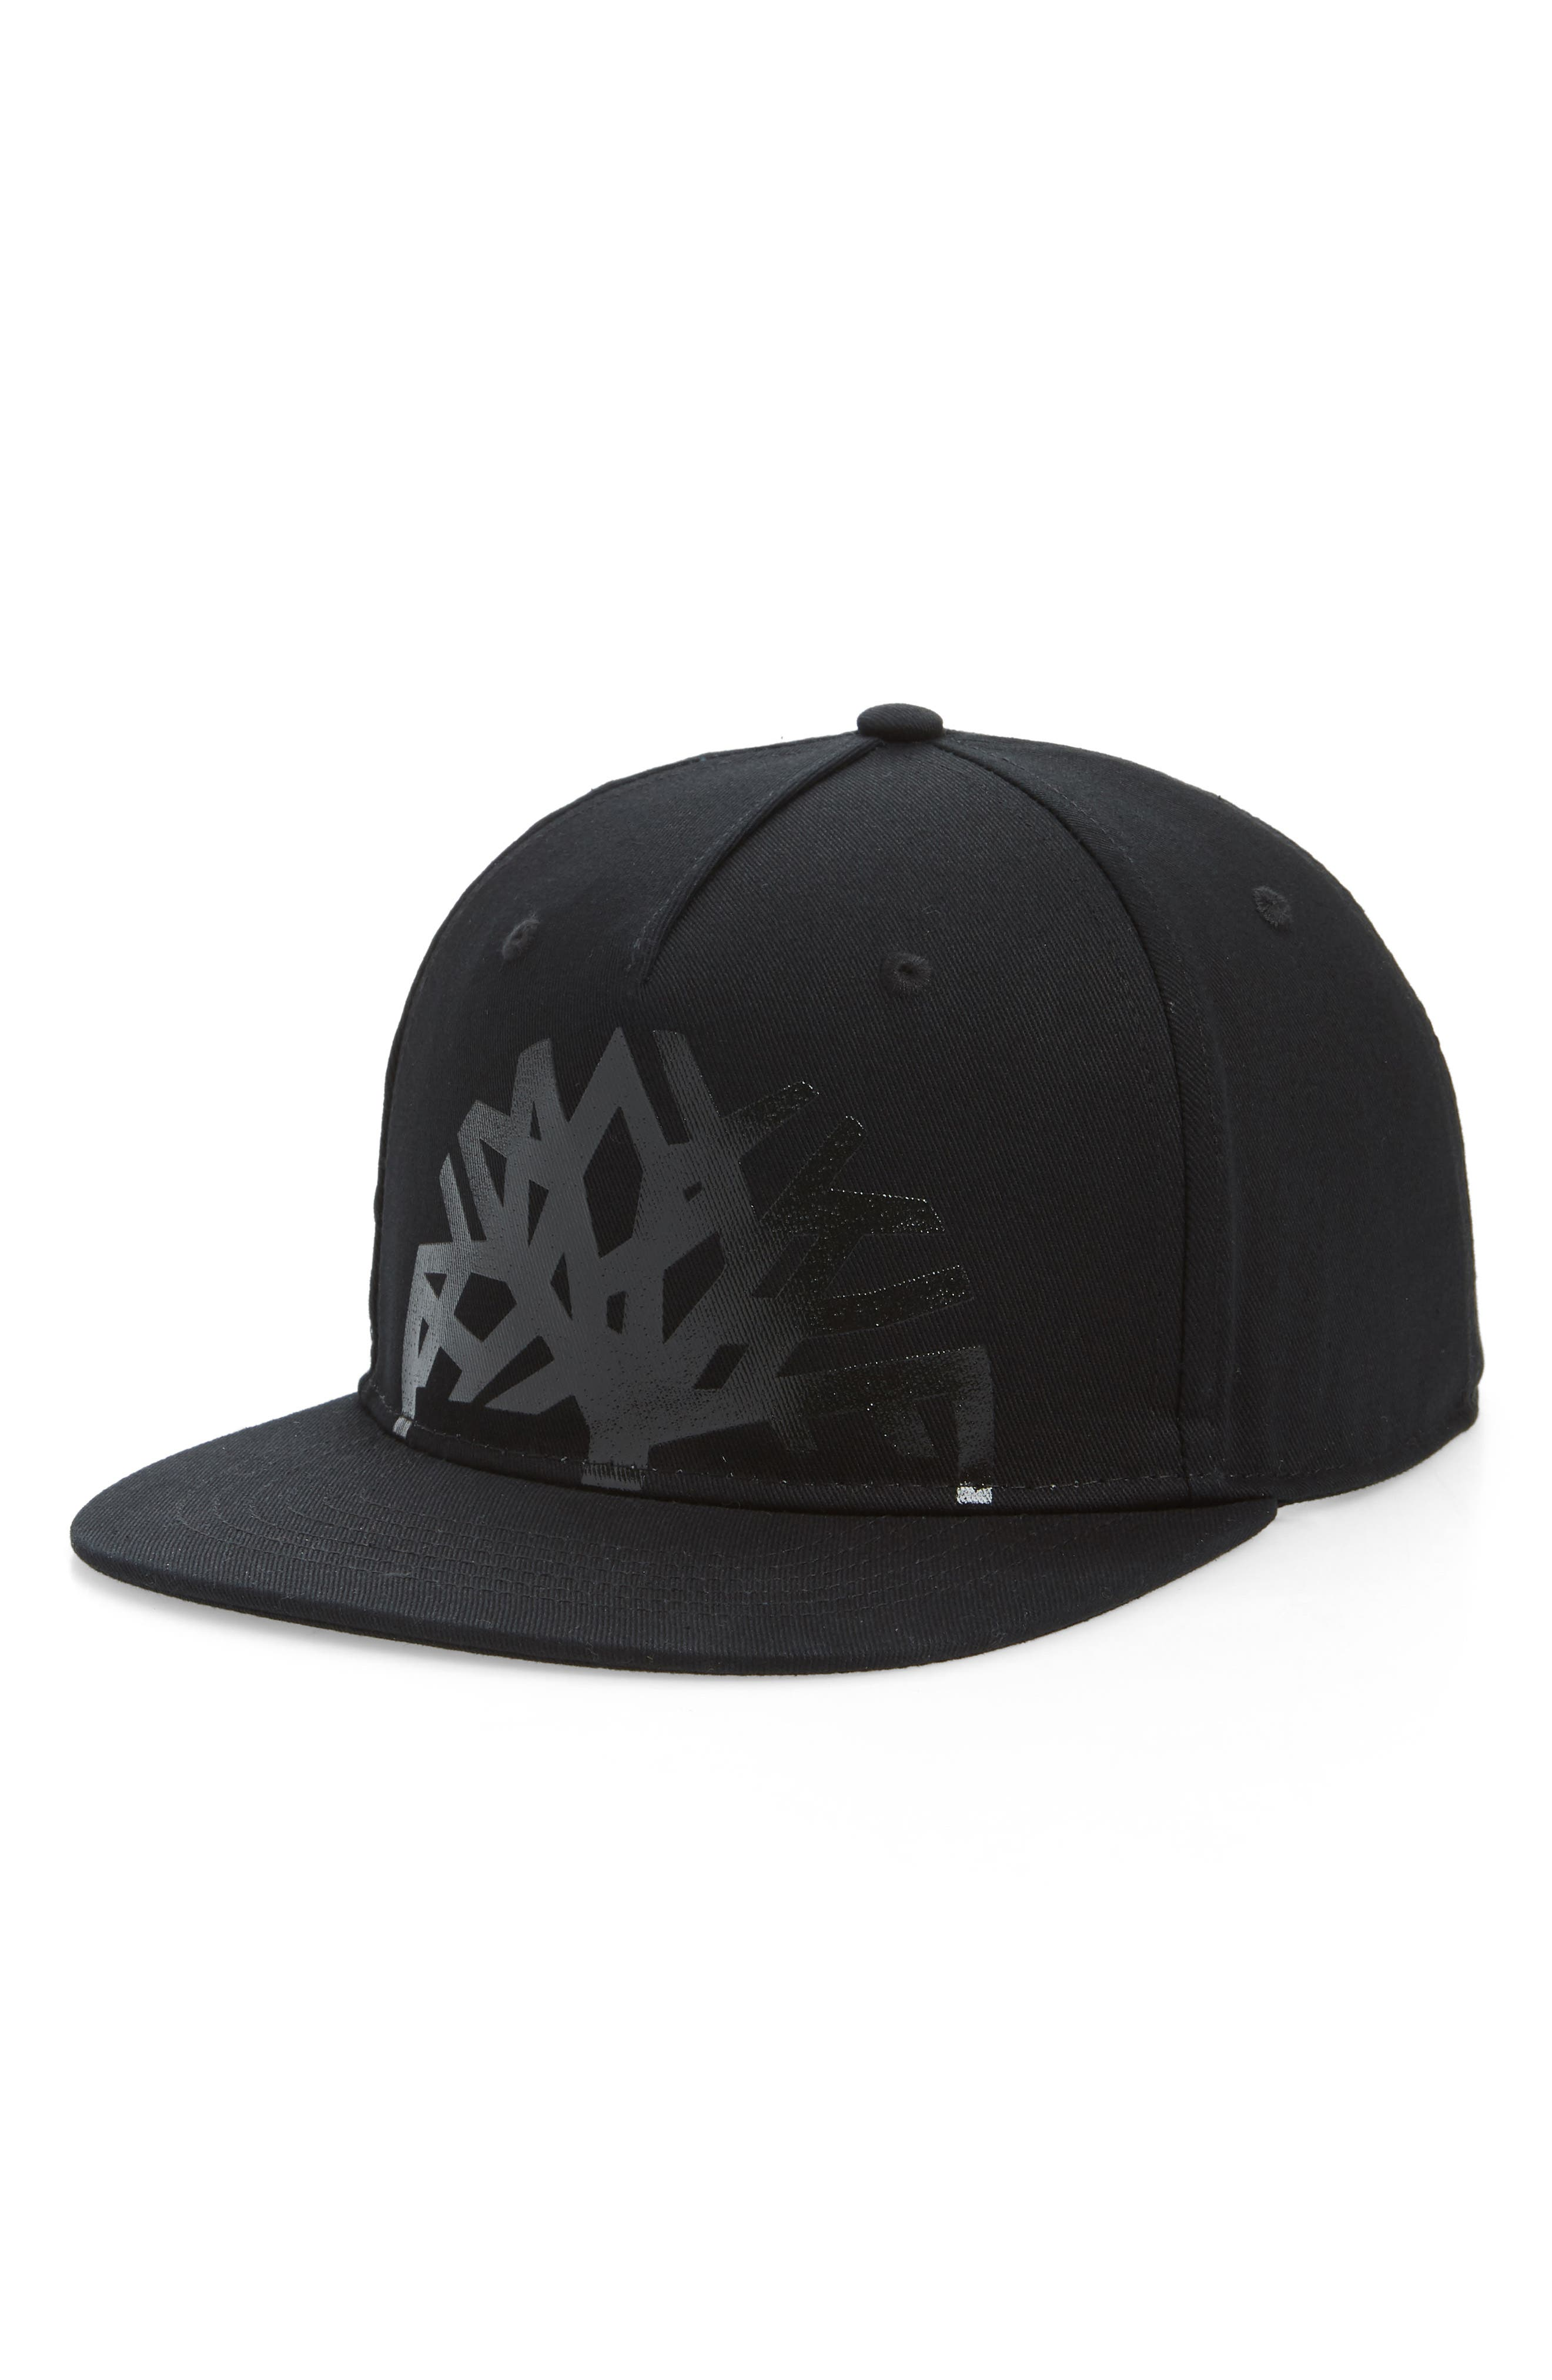 TIMBERLAND, Urban Craft Snapback Baseball Cap, Main thumbnail 1, color, BLACK